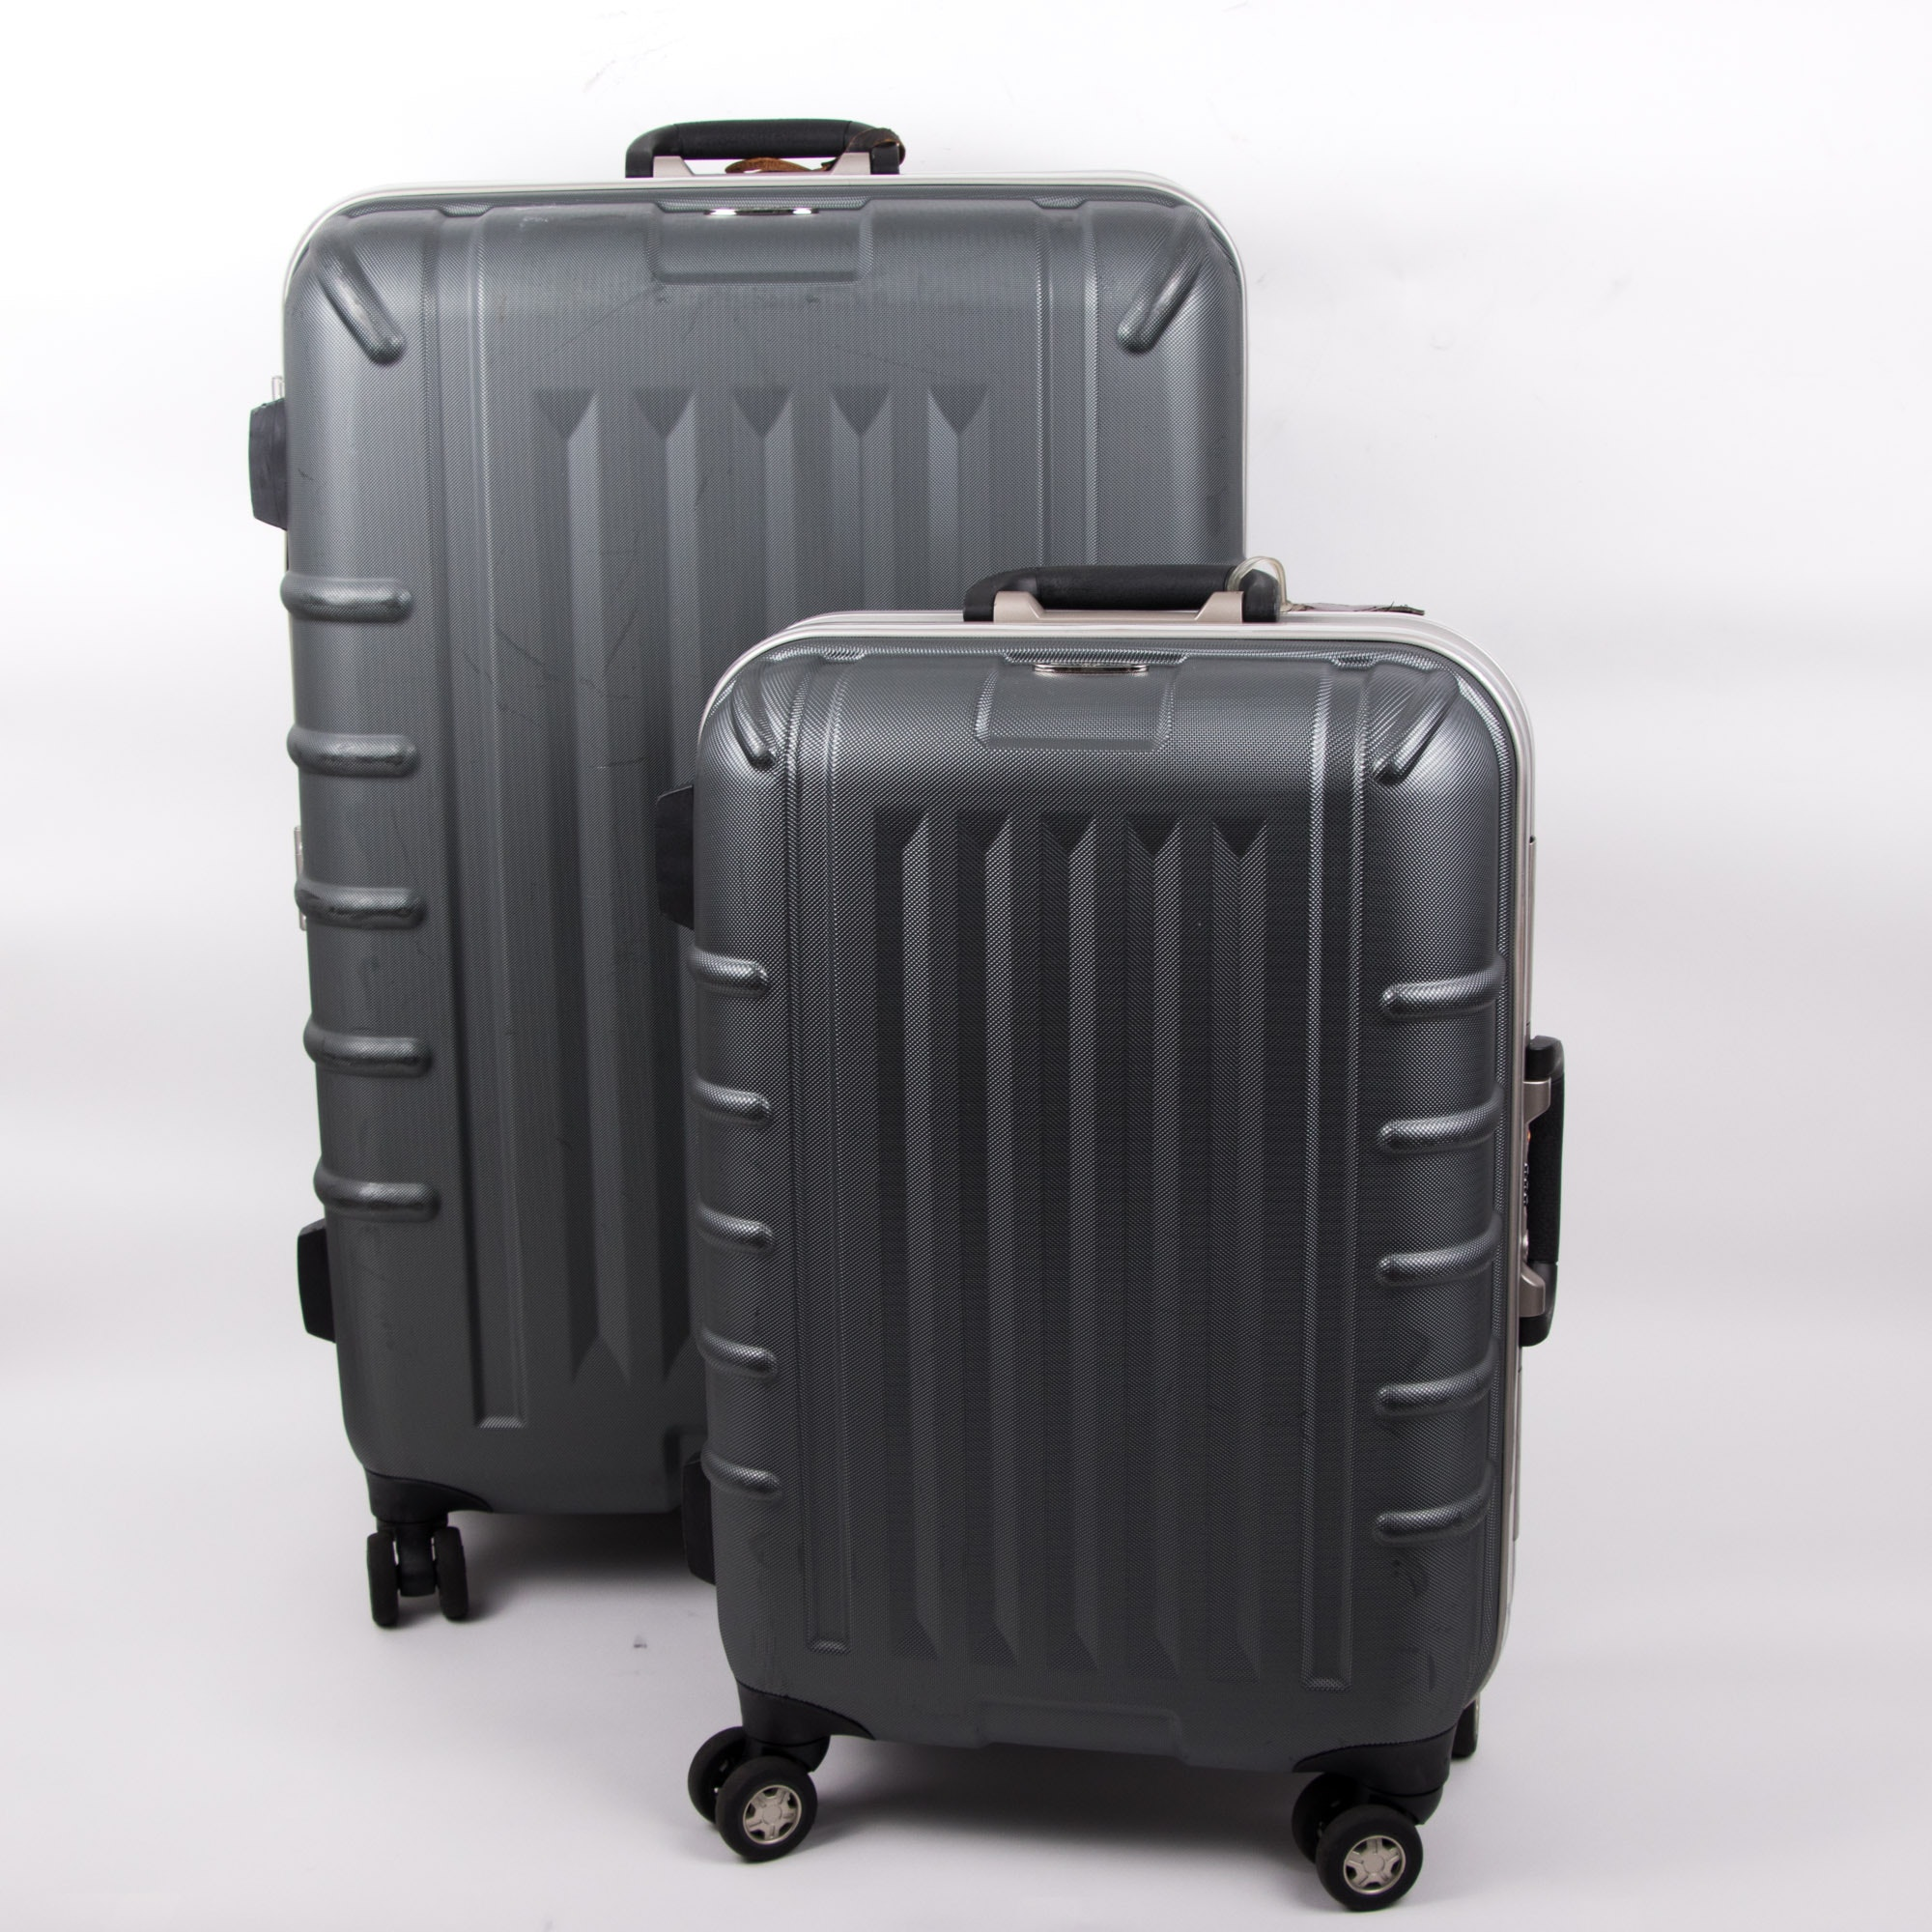 Samsonite Hard-Case Roller Suitcases